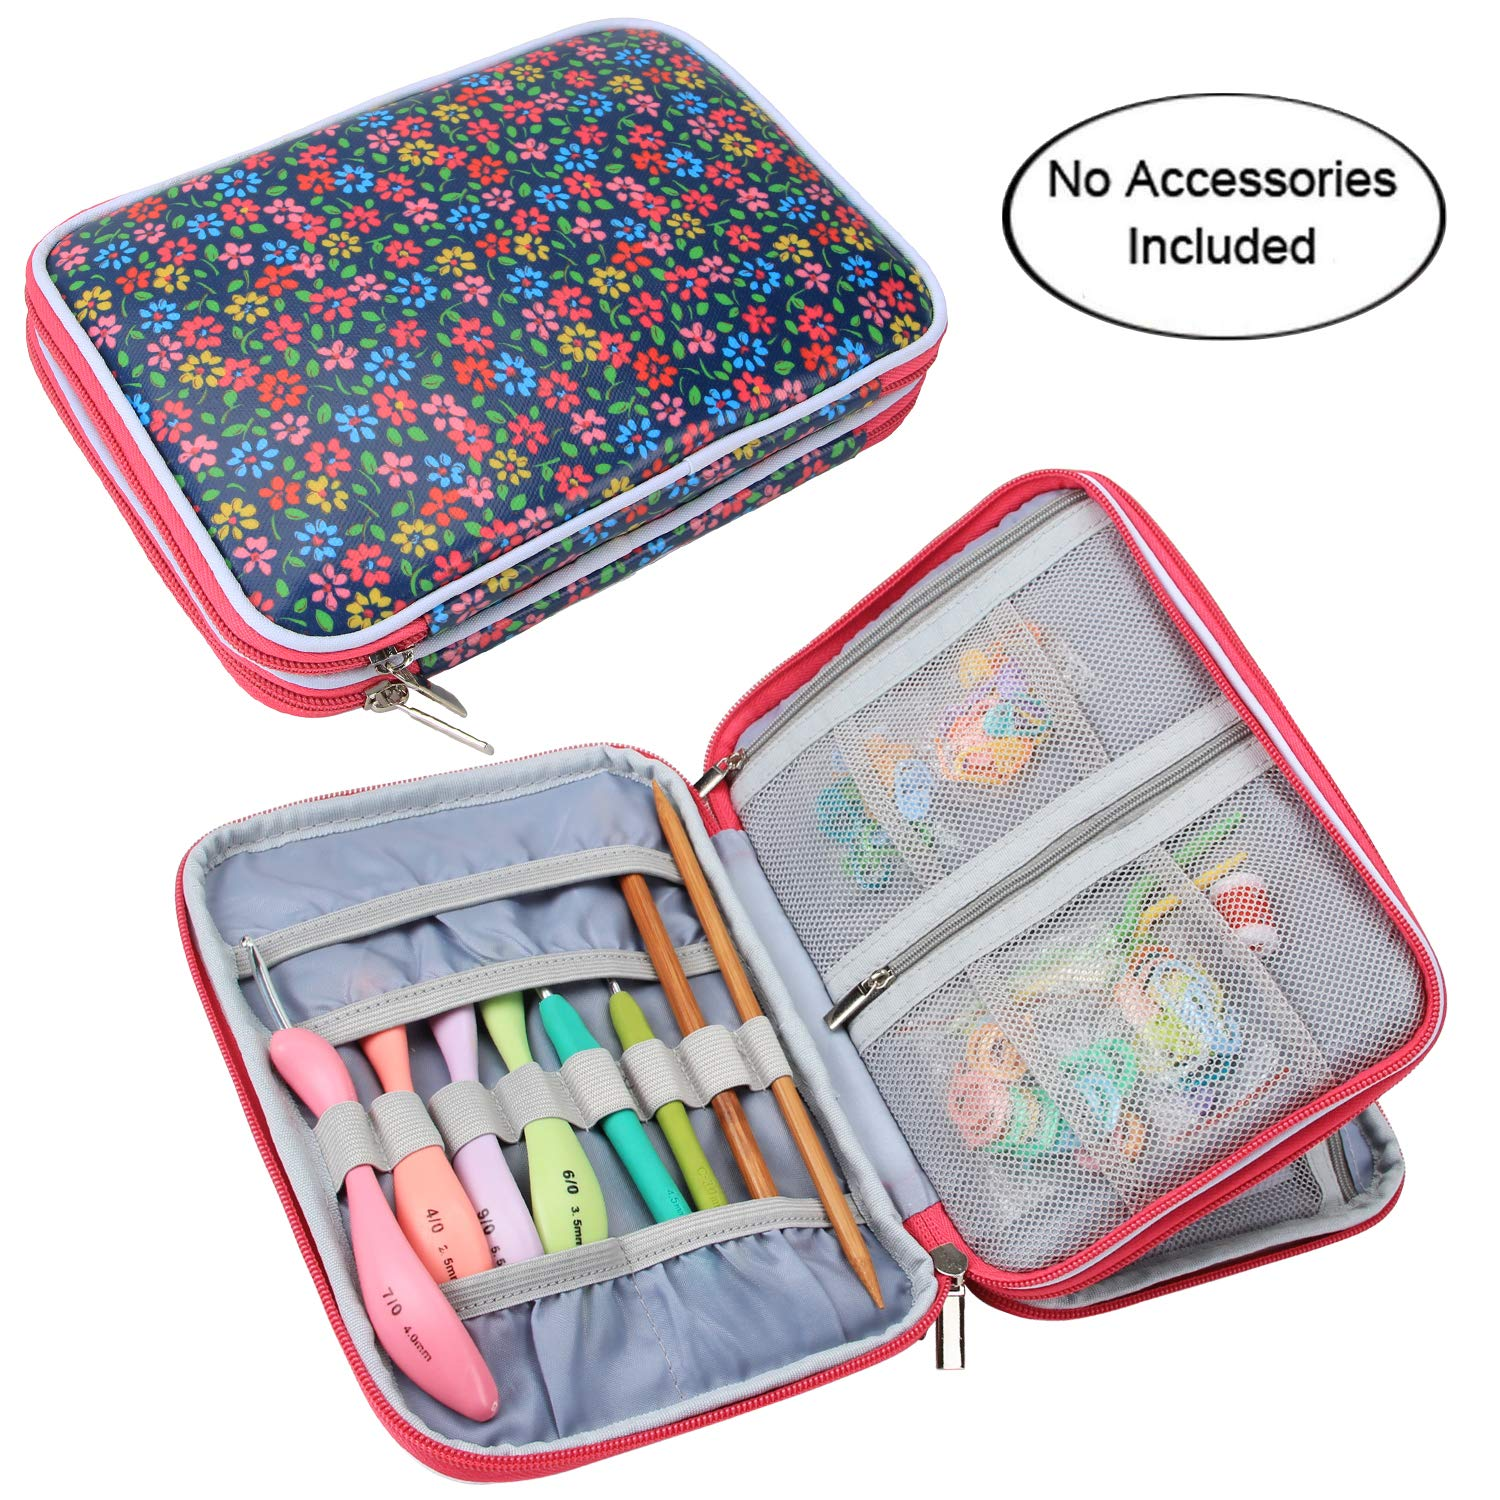 Teamoy Crochet Hook Case, Travel Storage Bag for Swing Crochet Hooks, Lighted Hooks, Needles(Up to 8'') and Accessories, Flowers Blue(No Accessories Included)